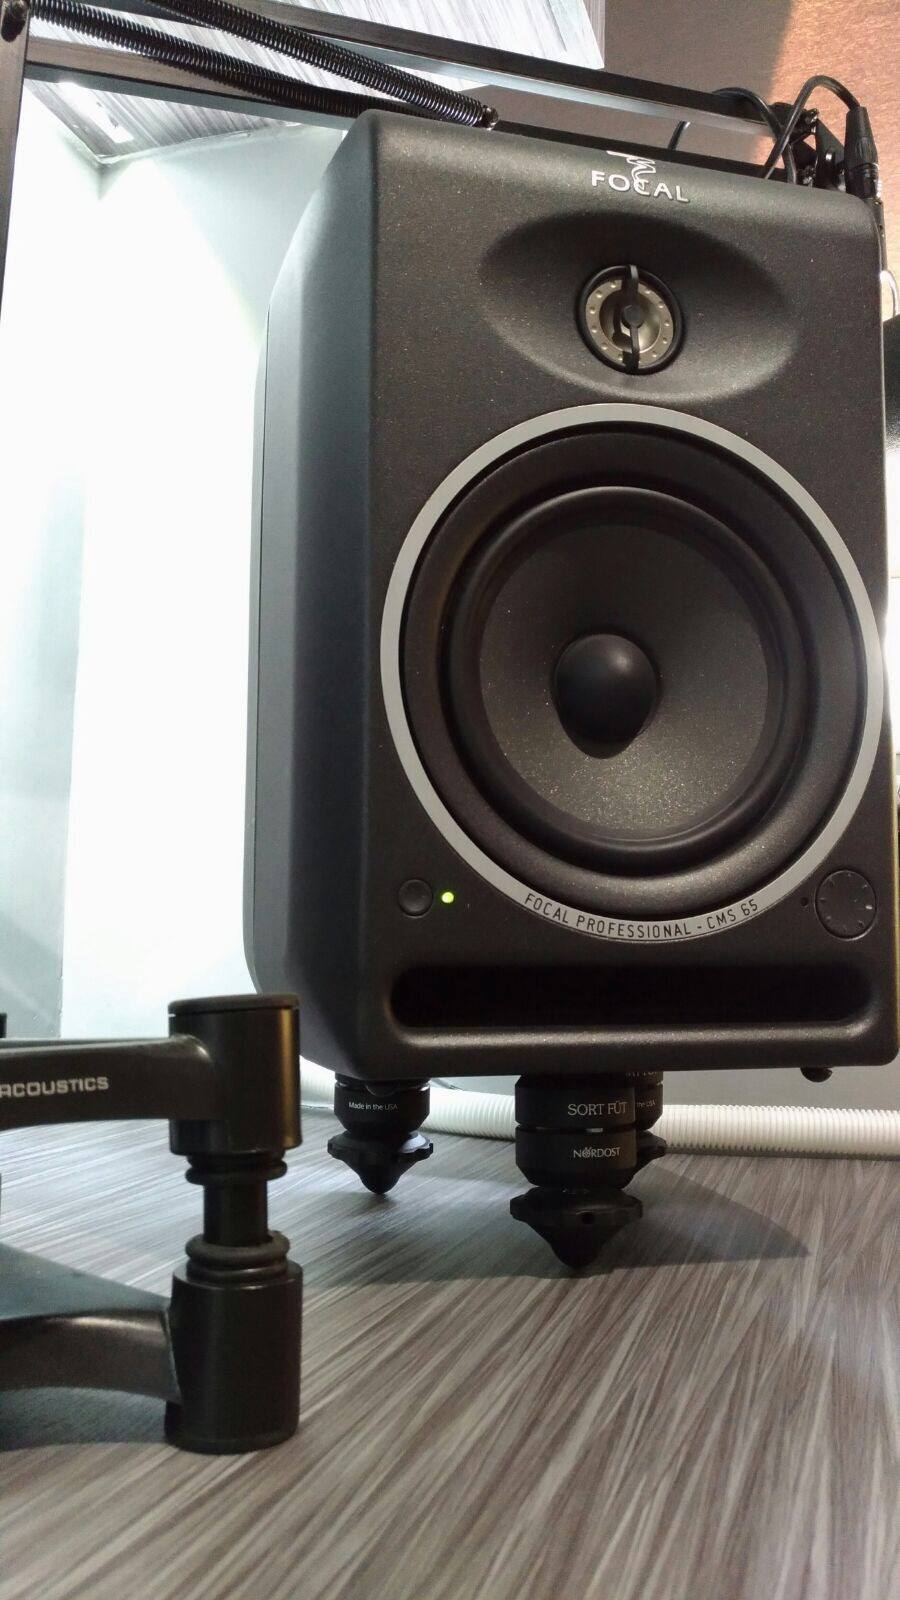 AMEK shared this picture of   a Focal Professional supported by our Sort Füt!